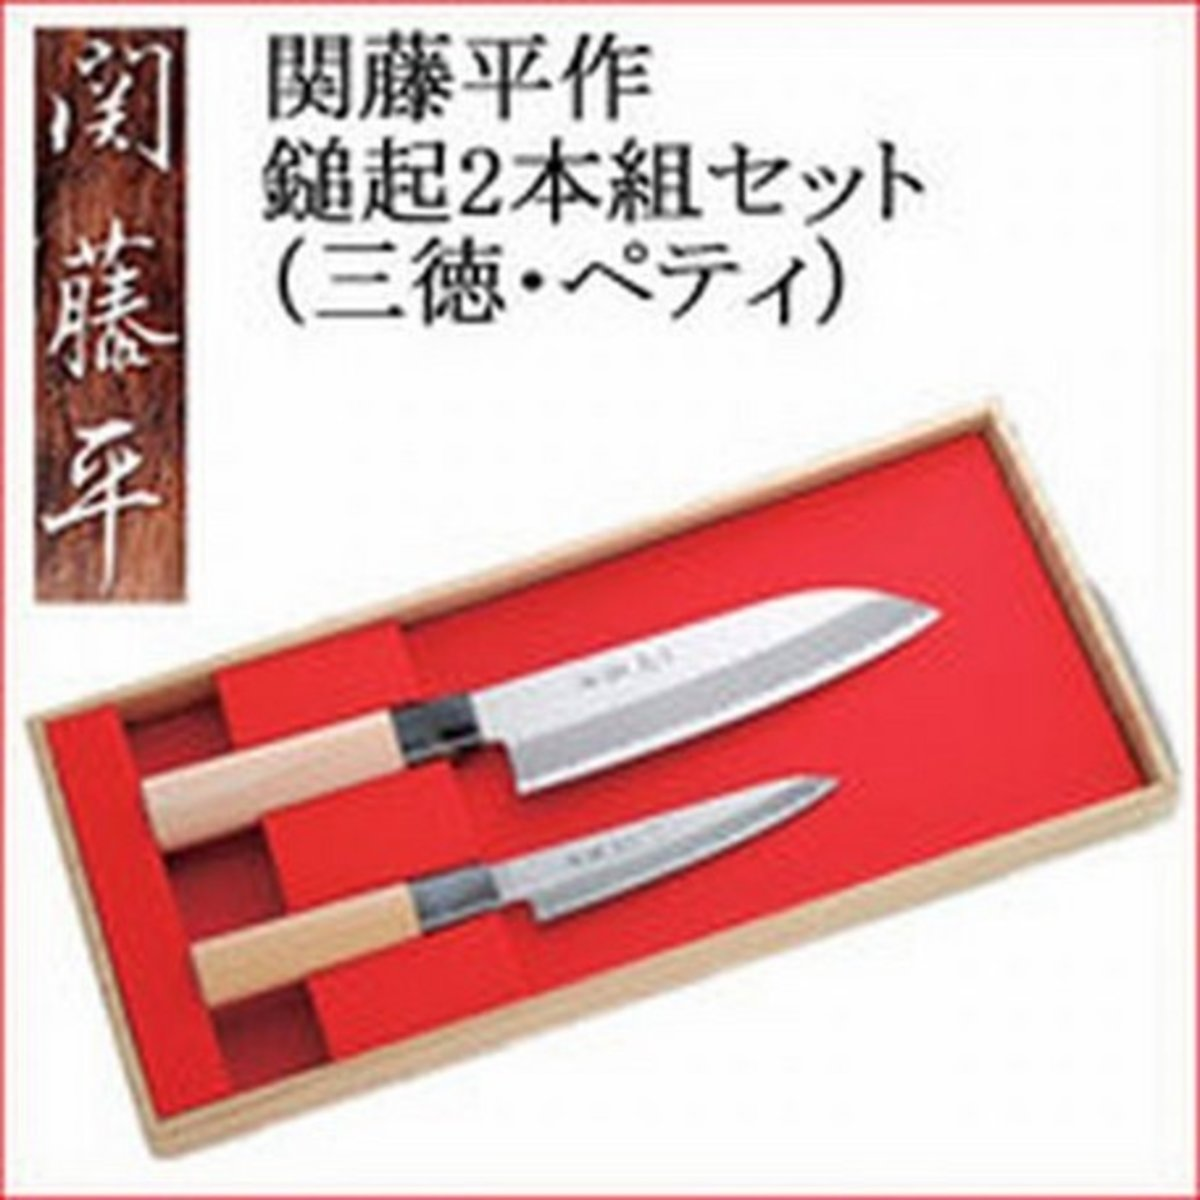 (Made in Japan) Set of 2pcs Touhei Oitsuchi Fruit Knife + Meat Knife Gift Set